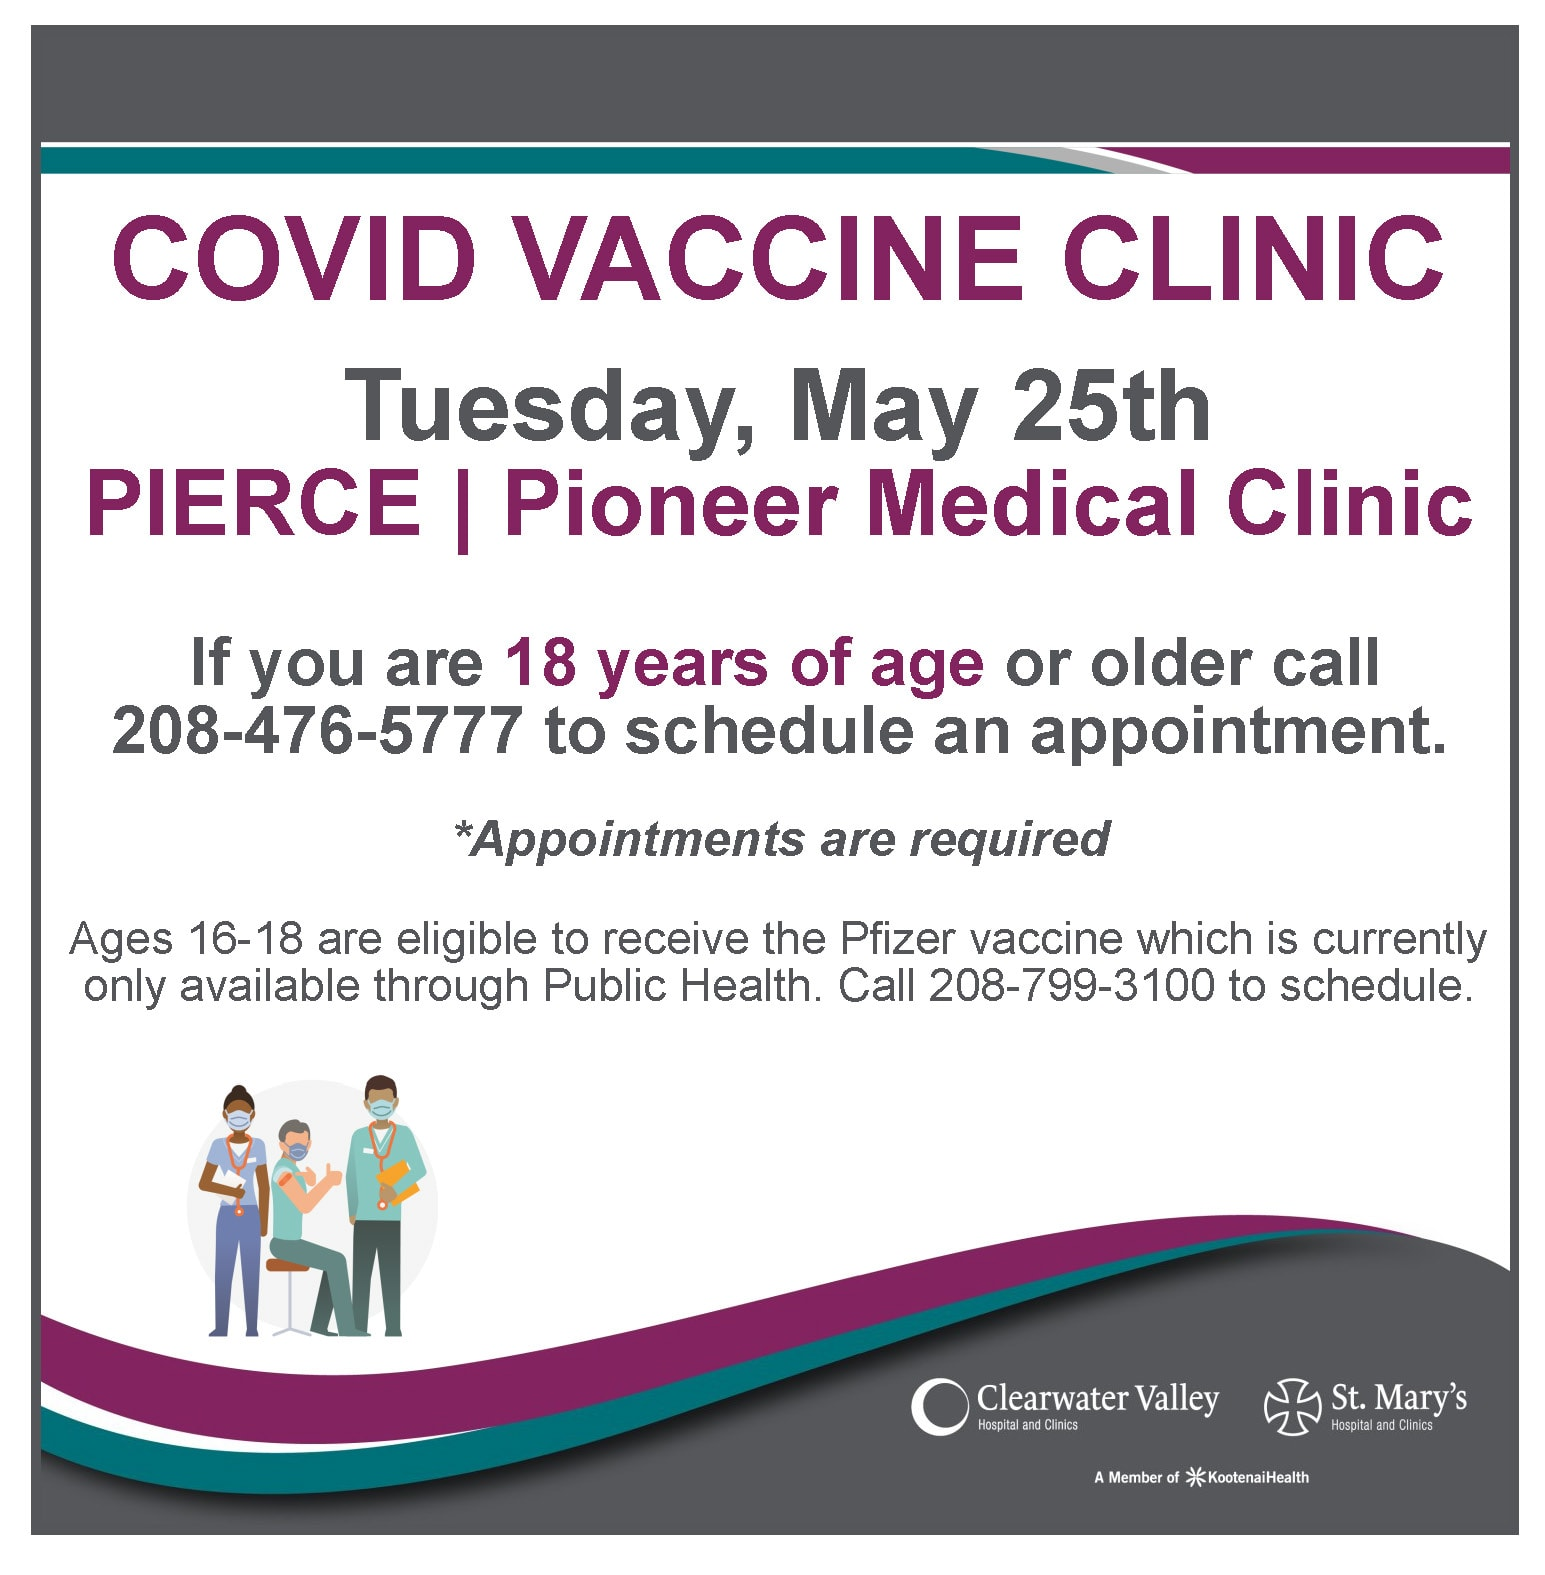 Pioneer Medical Clinic Vaccine Clinic